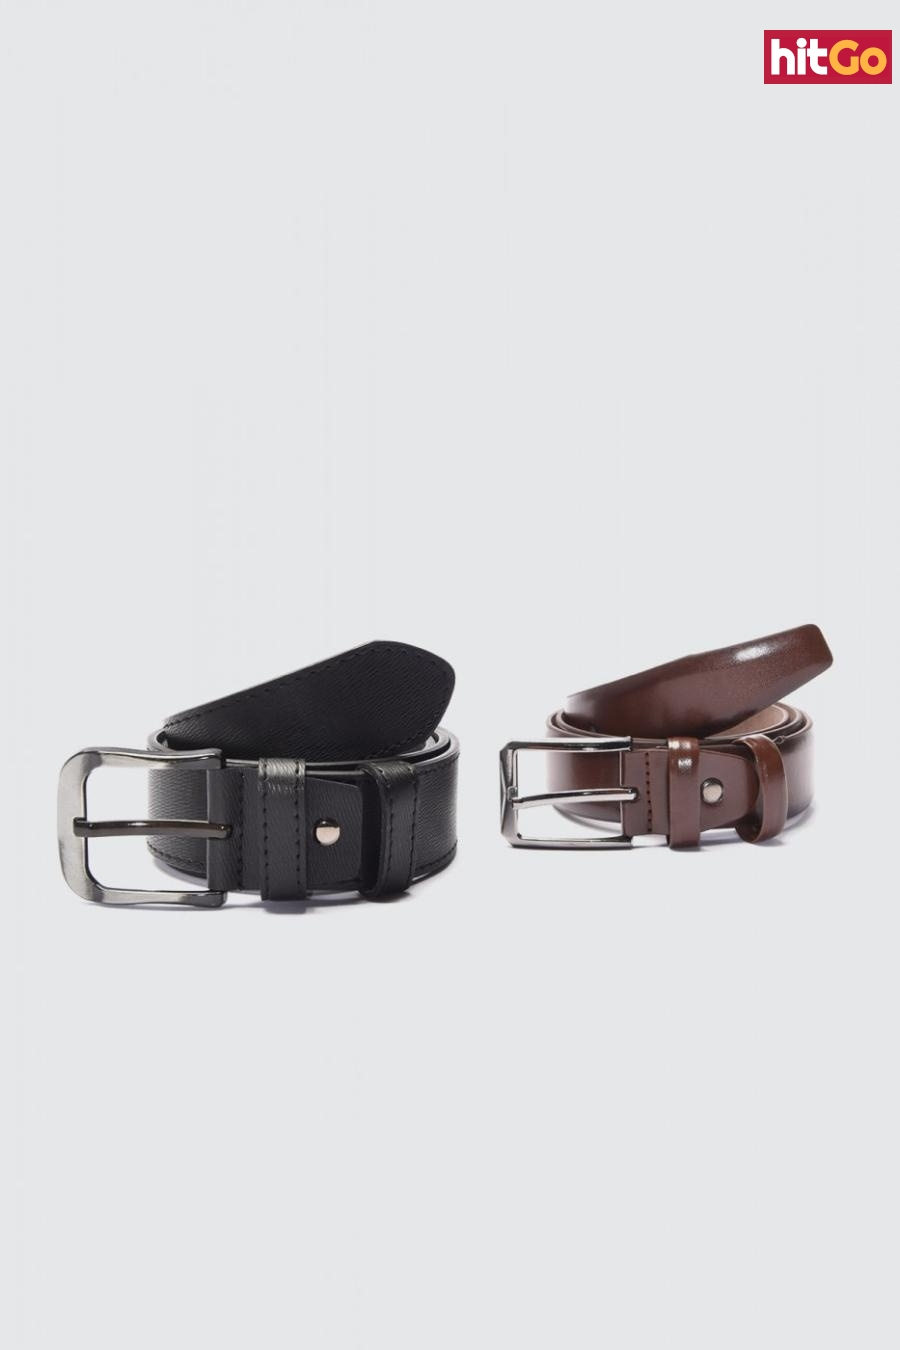 Trendyol Multicolored Mens 2-way FD Leather Belt pánské 130 cm